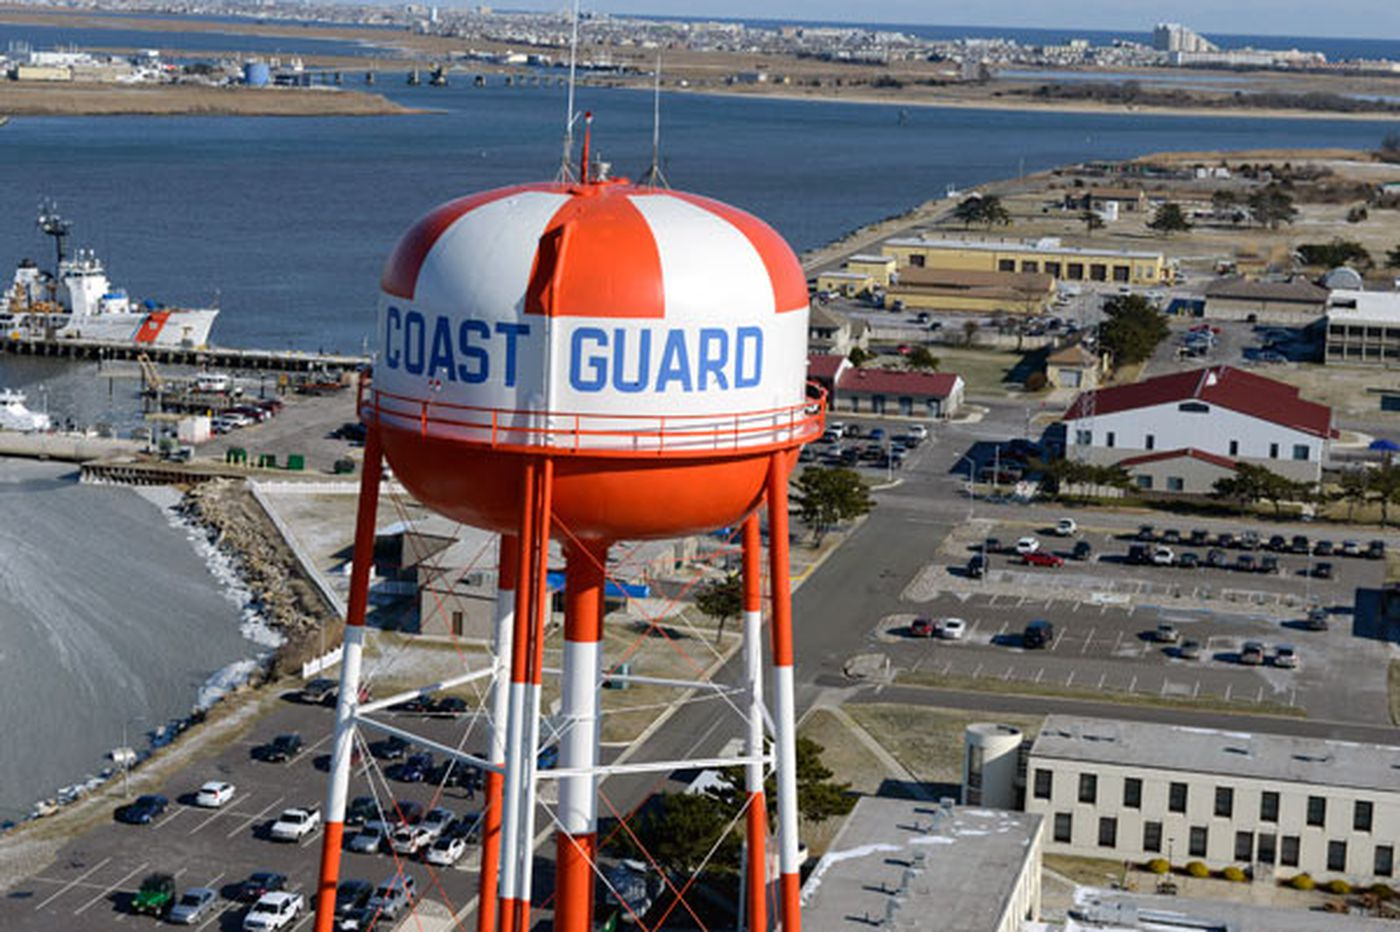 Man arrested with assault rifle, body armor at Cape May Coast Guard facility, police say